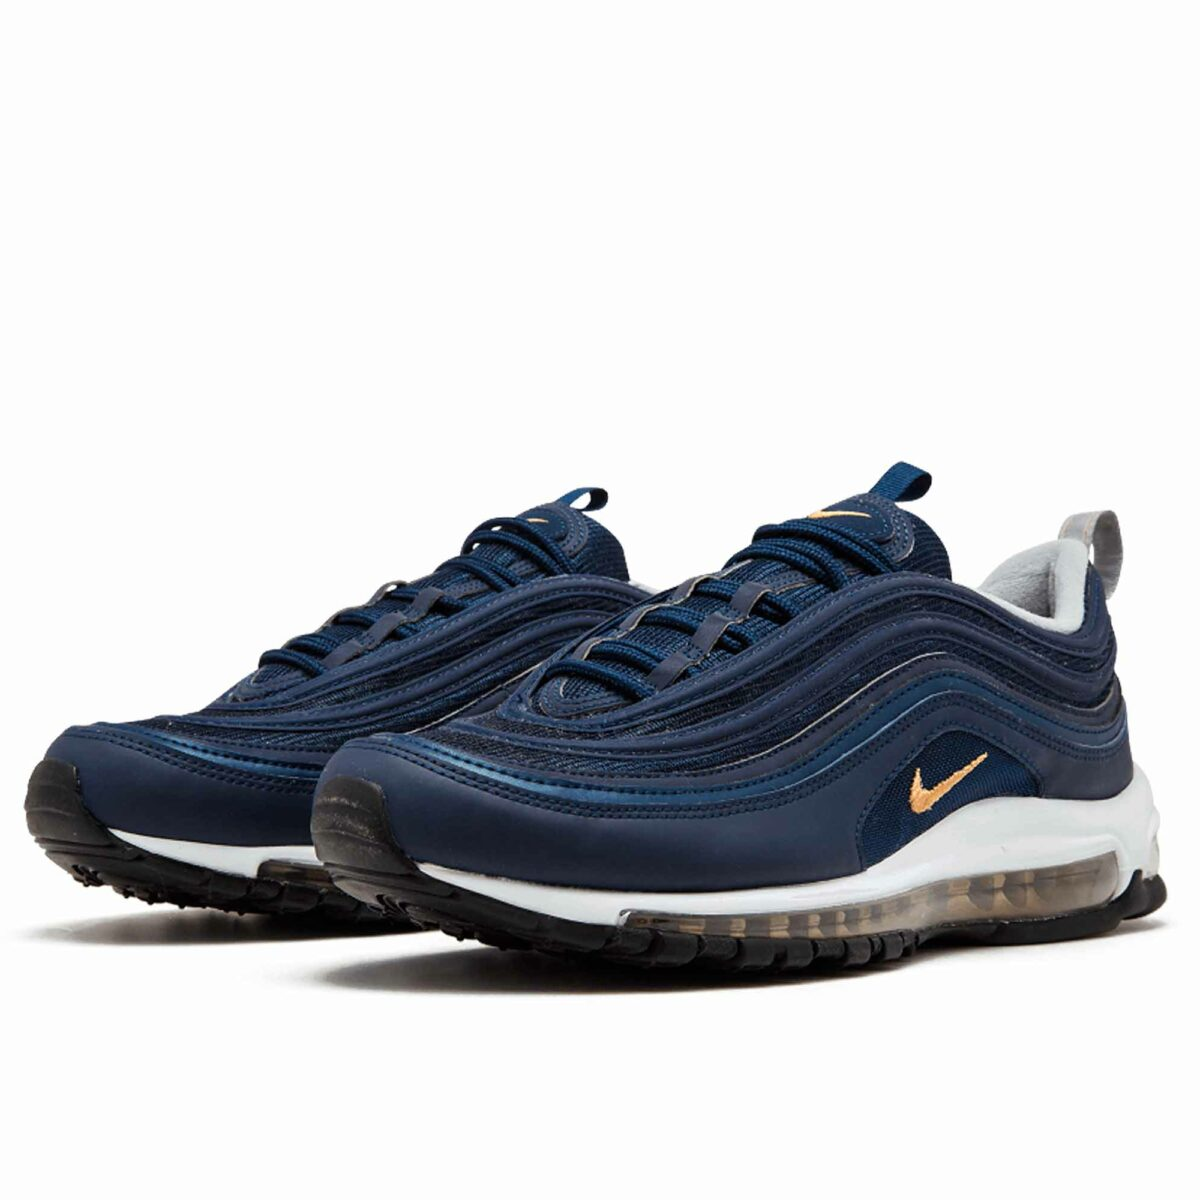 nike air max 97 dark blue 921826_400 купить